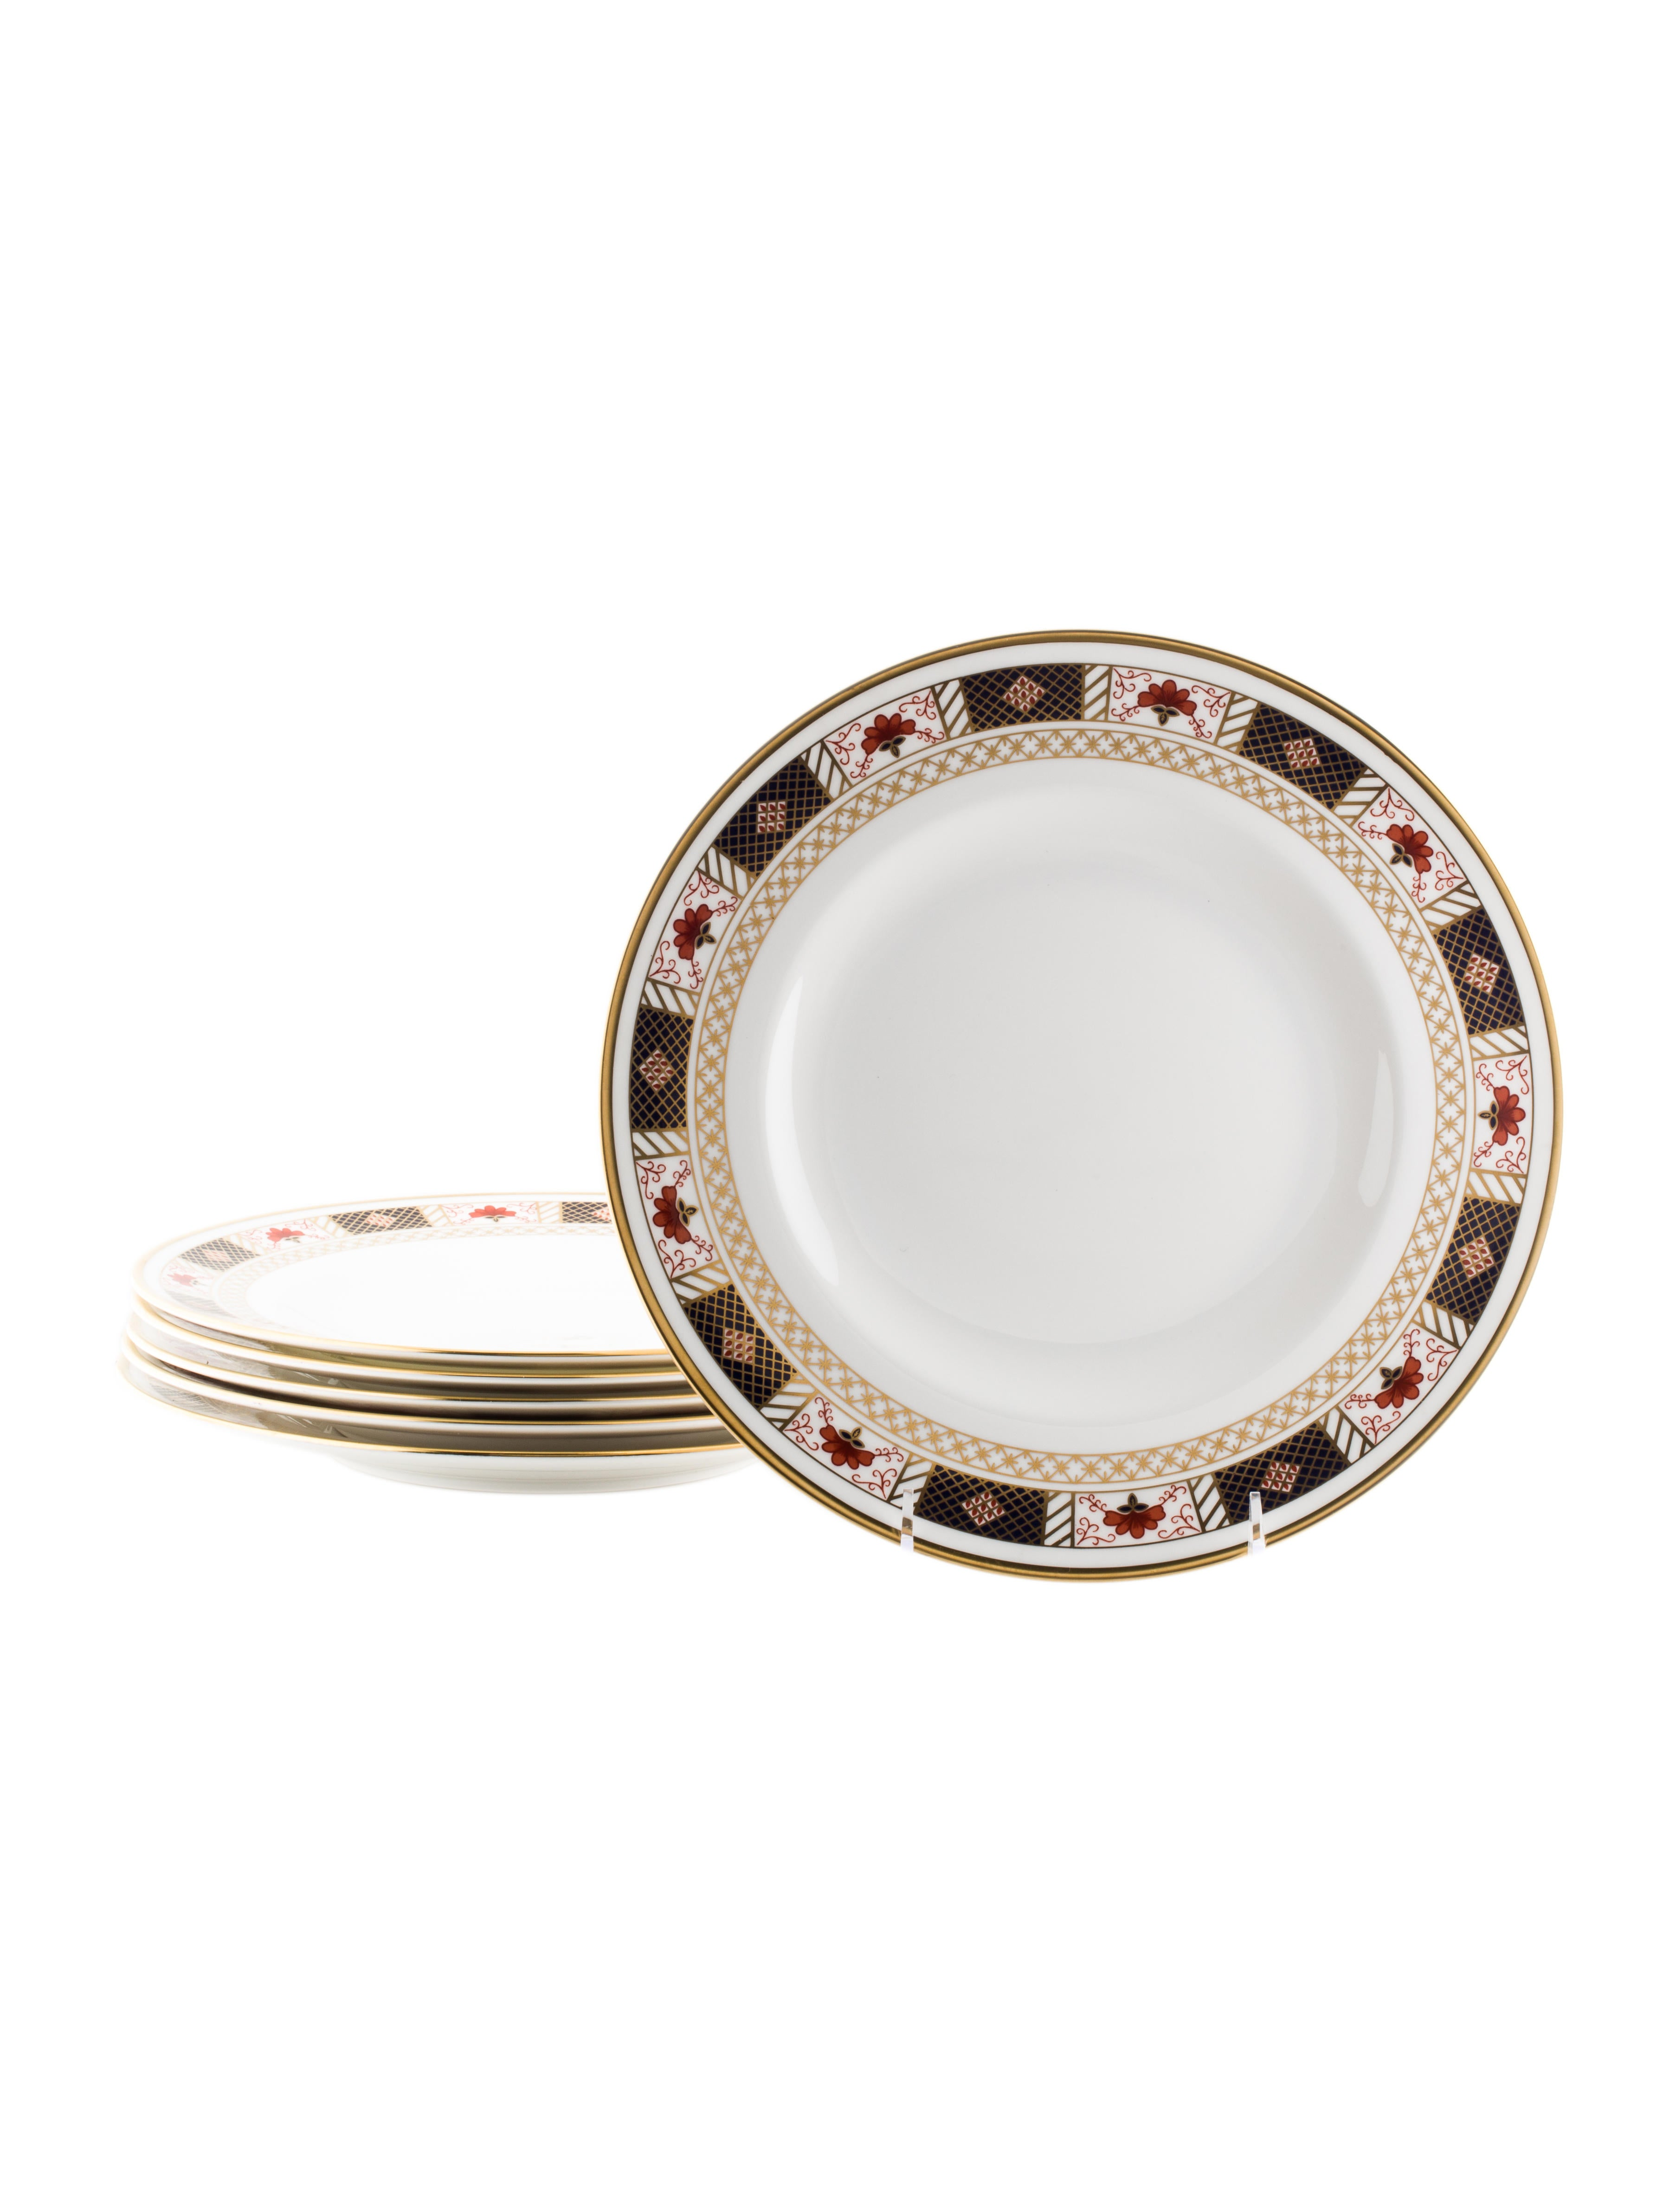 Set of dinner plates tabletop and kitchen rcd20009 for Kitchen set plates